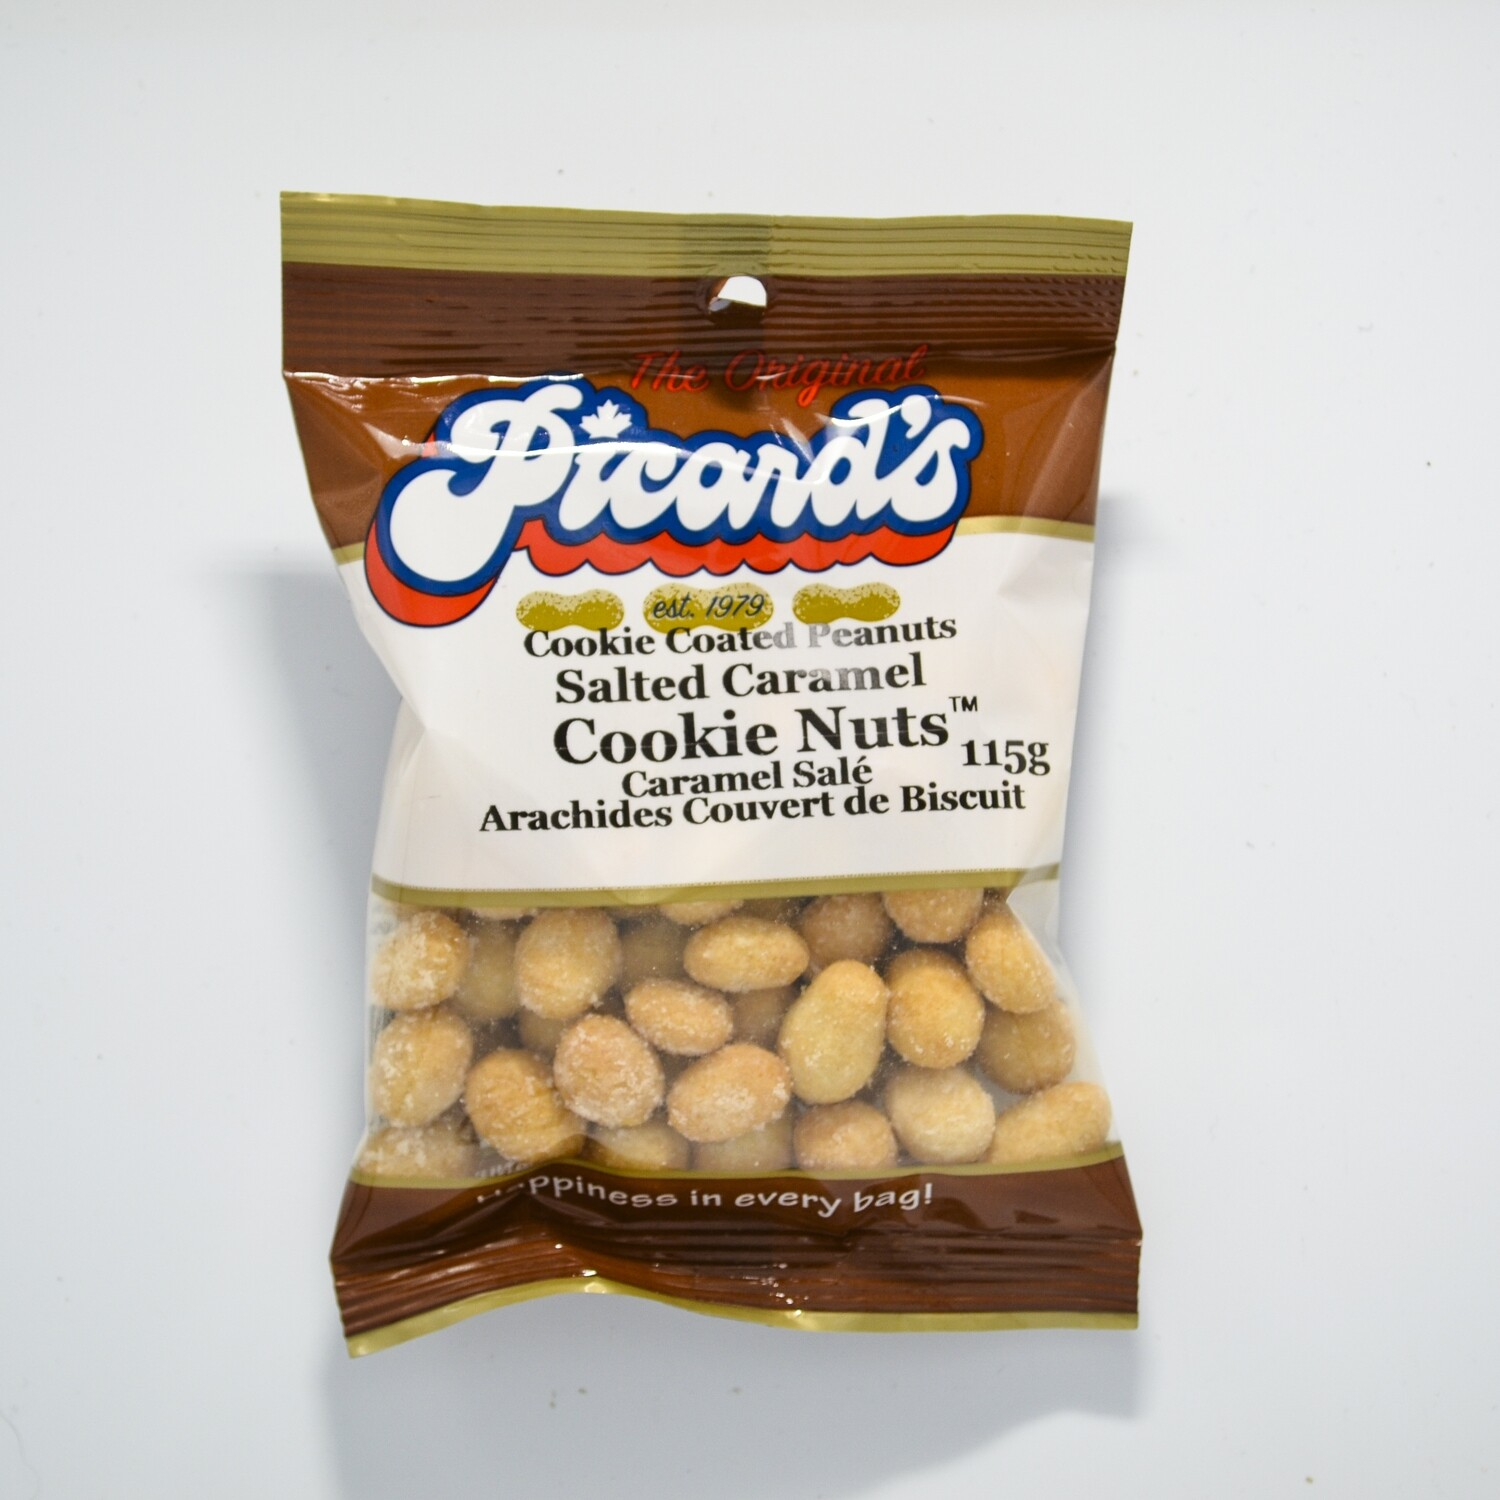 Picard's - Salted Caramel Cookienuts 115g